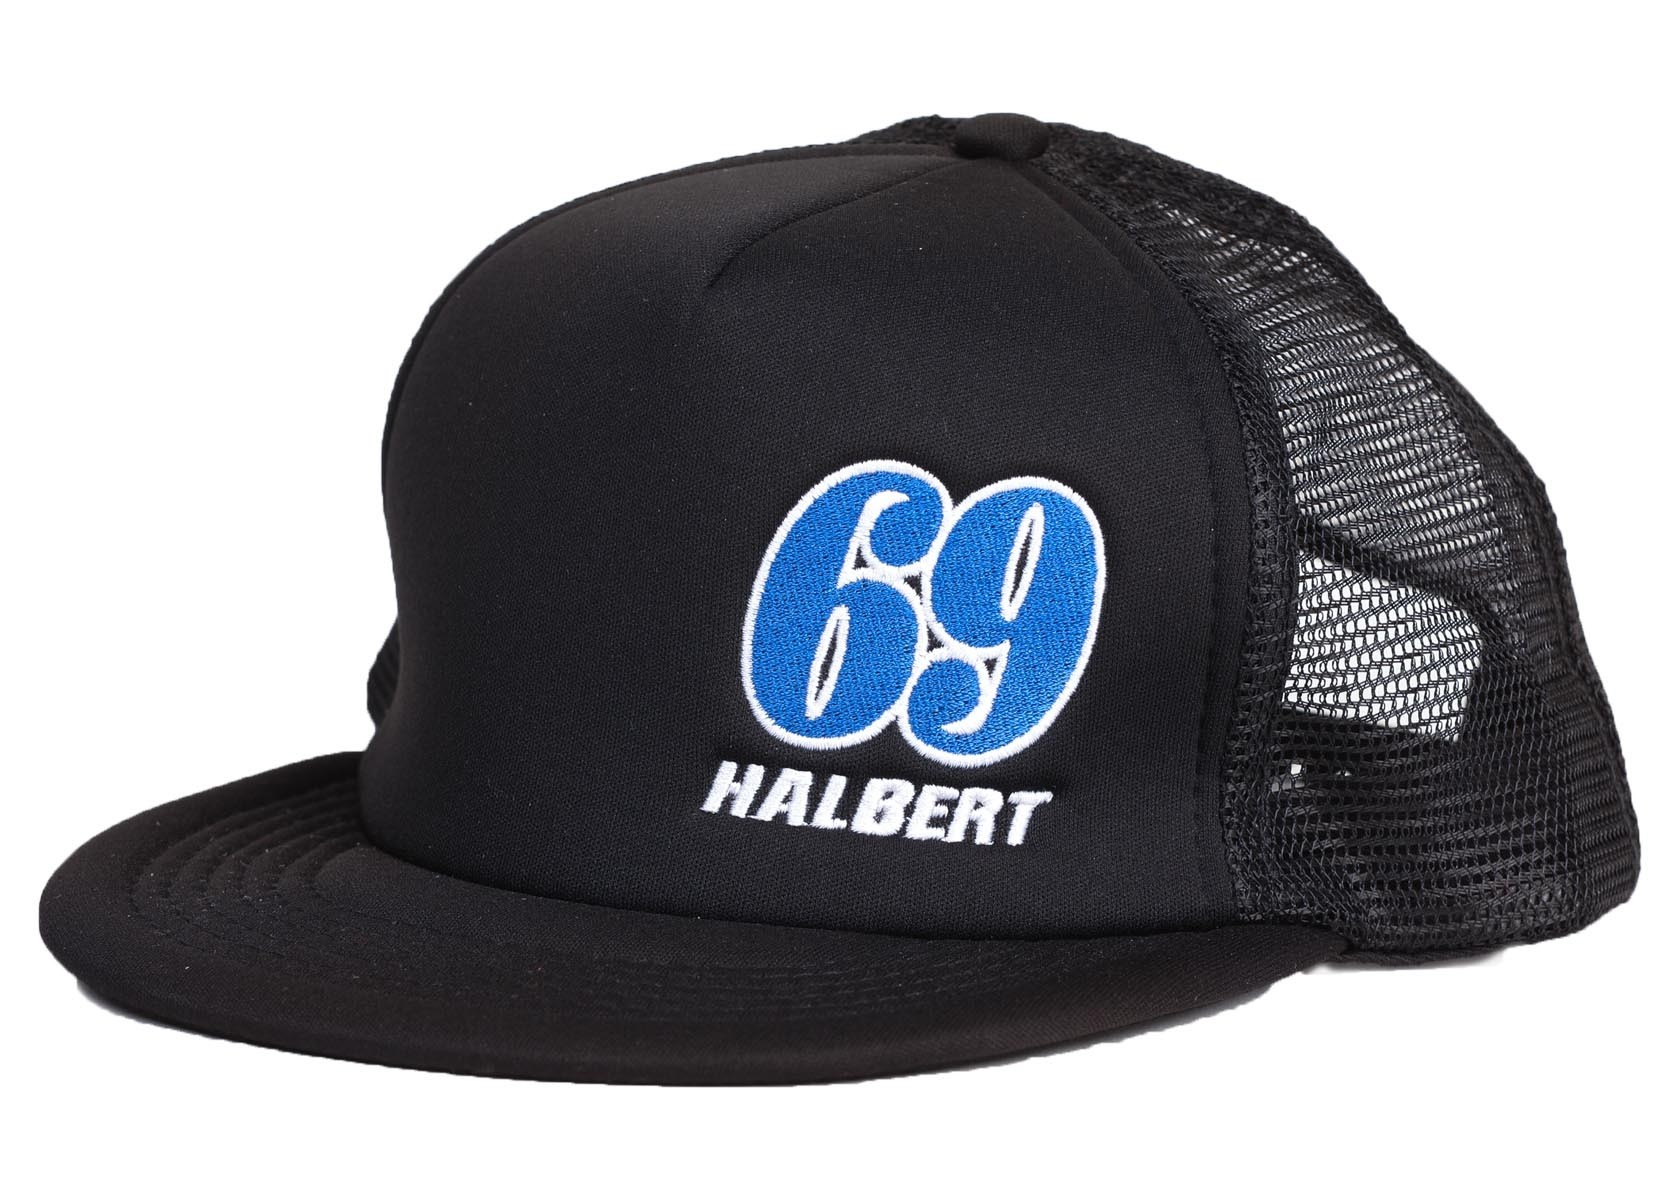 Sammy Halbert Black/Blue 69 Hat